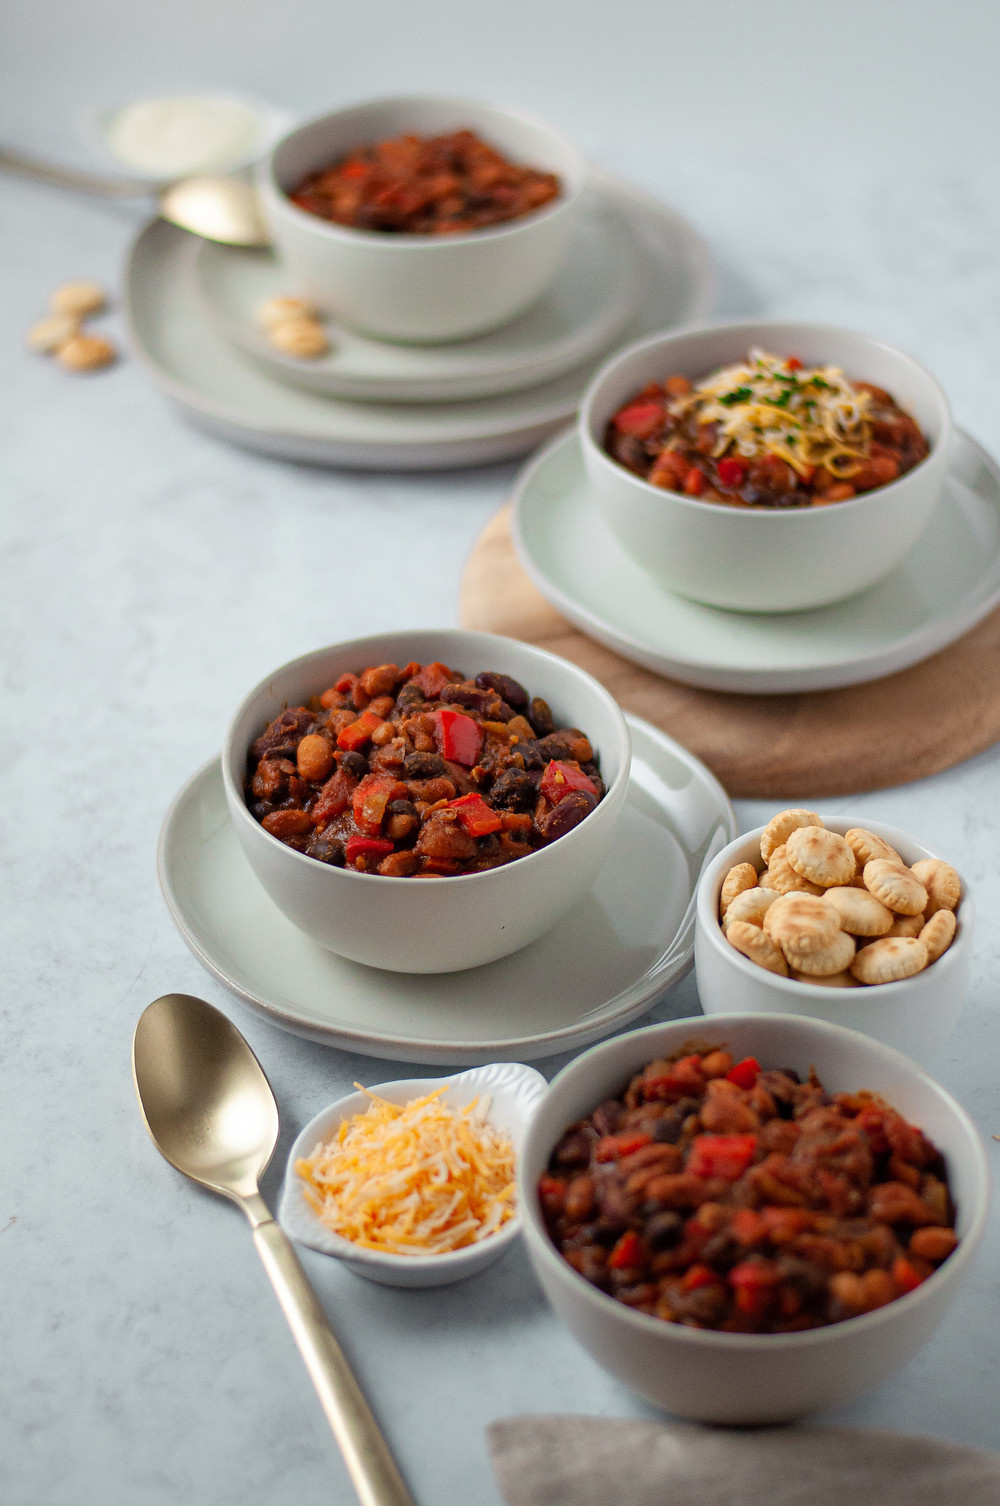 Another view of this vegetarian chili served up and ready to eat along with a variety of topping options